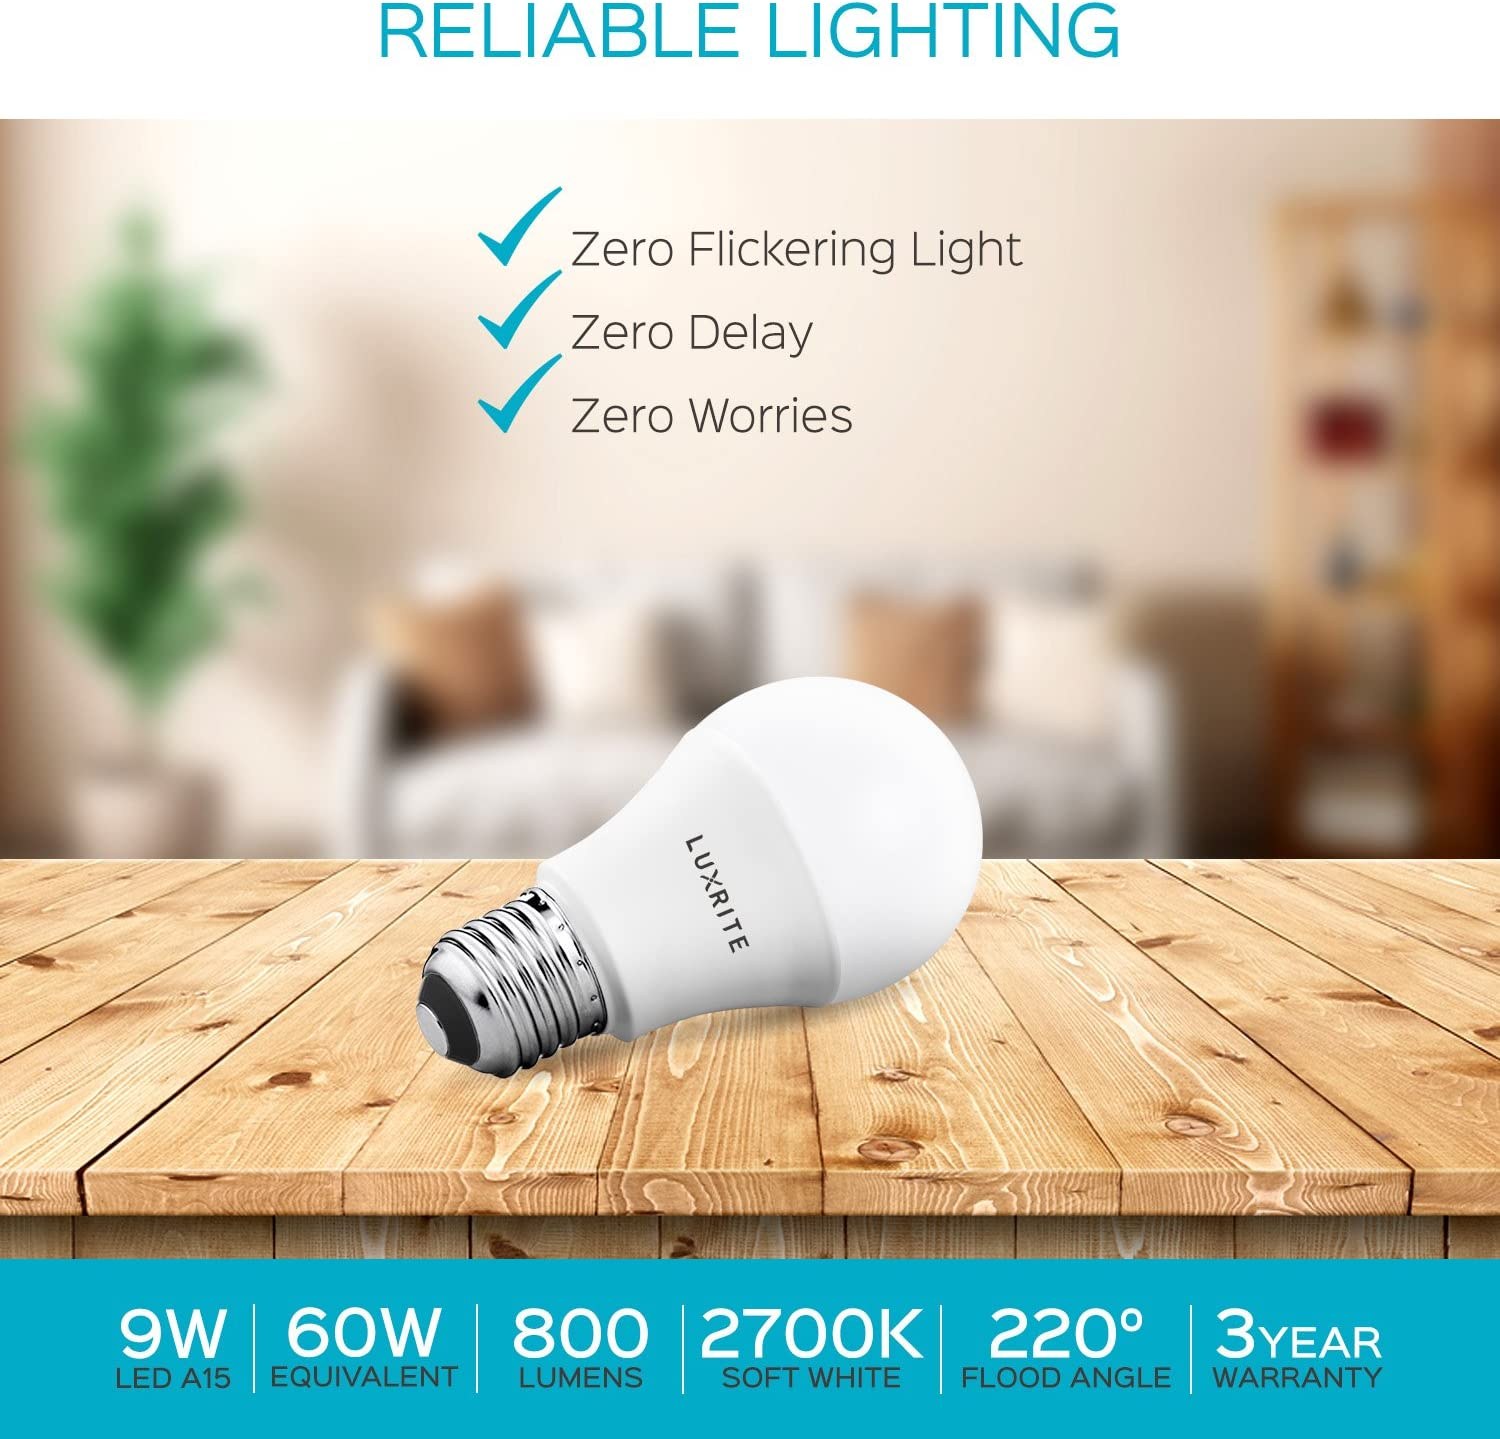 Enclosed Fixture Rated Energy Star Standard LED Bulb 9W 800 Lumens Perfect for Lamps and Home Lighting E26 Base Luxrite A19 LED Light Bulb 60W Equivalent 4000K Cool White Dimmable 6 Pack